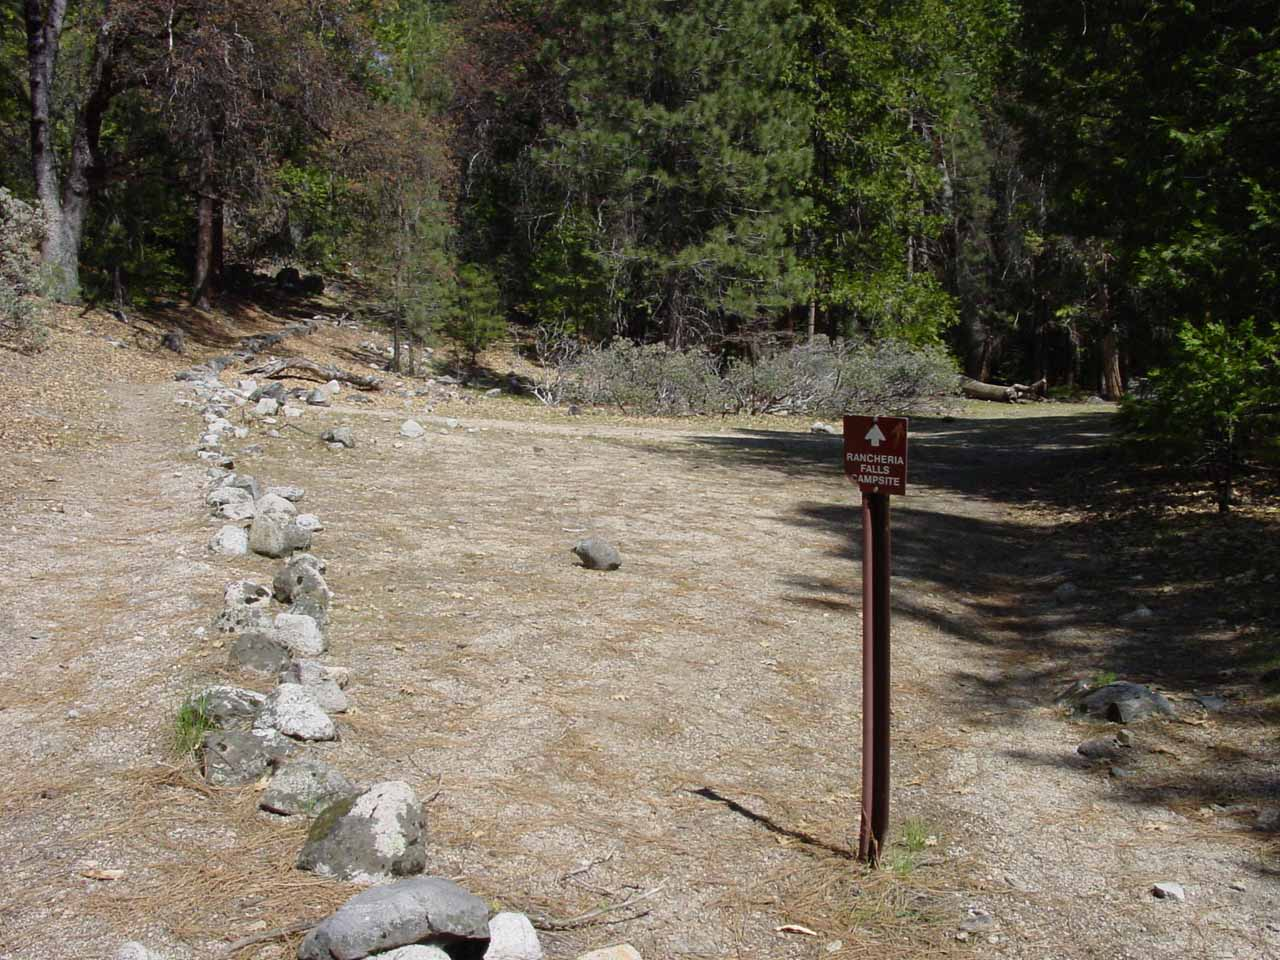 The fork in the trail where the left continued onwards while the right went to the backpacker's camp